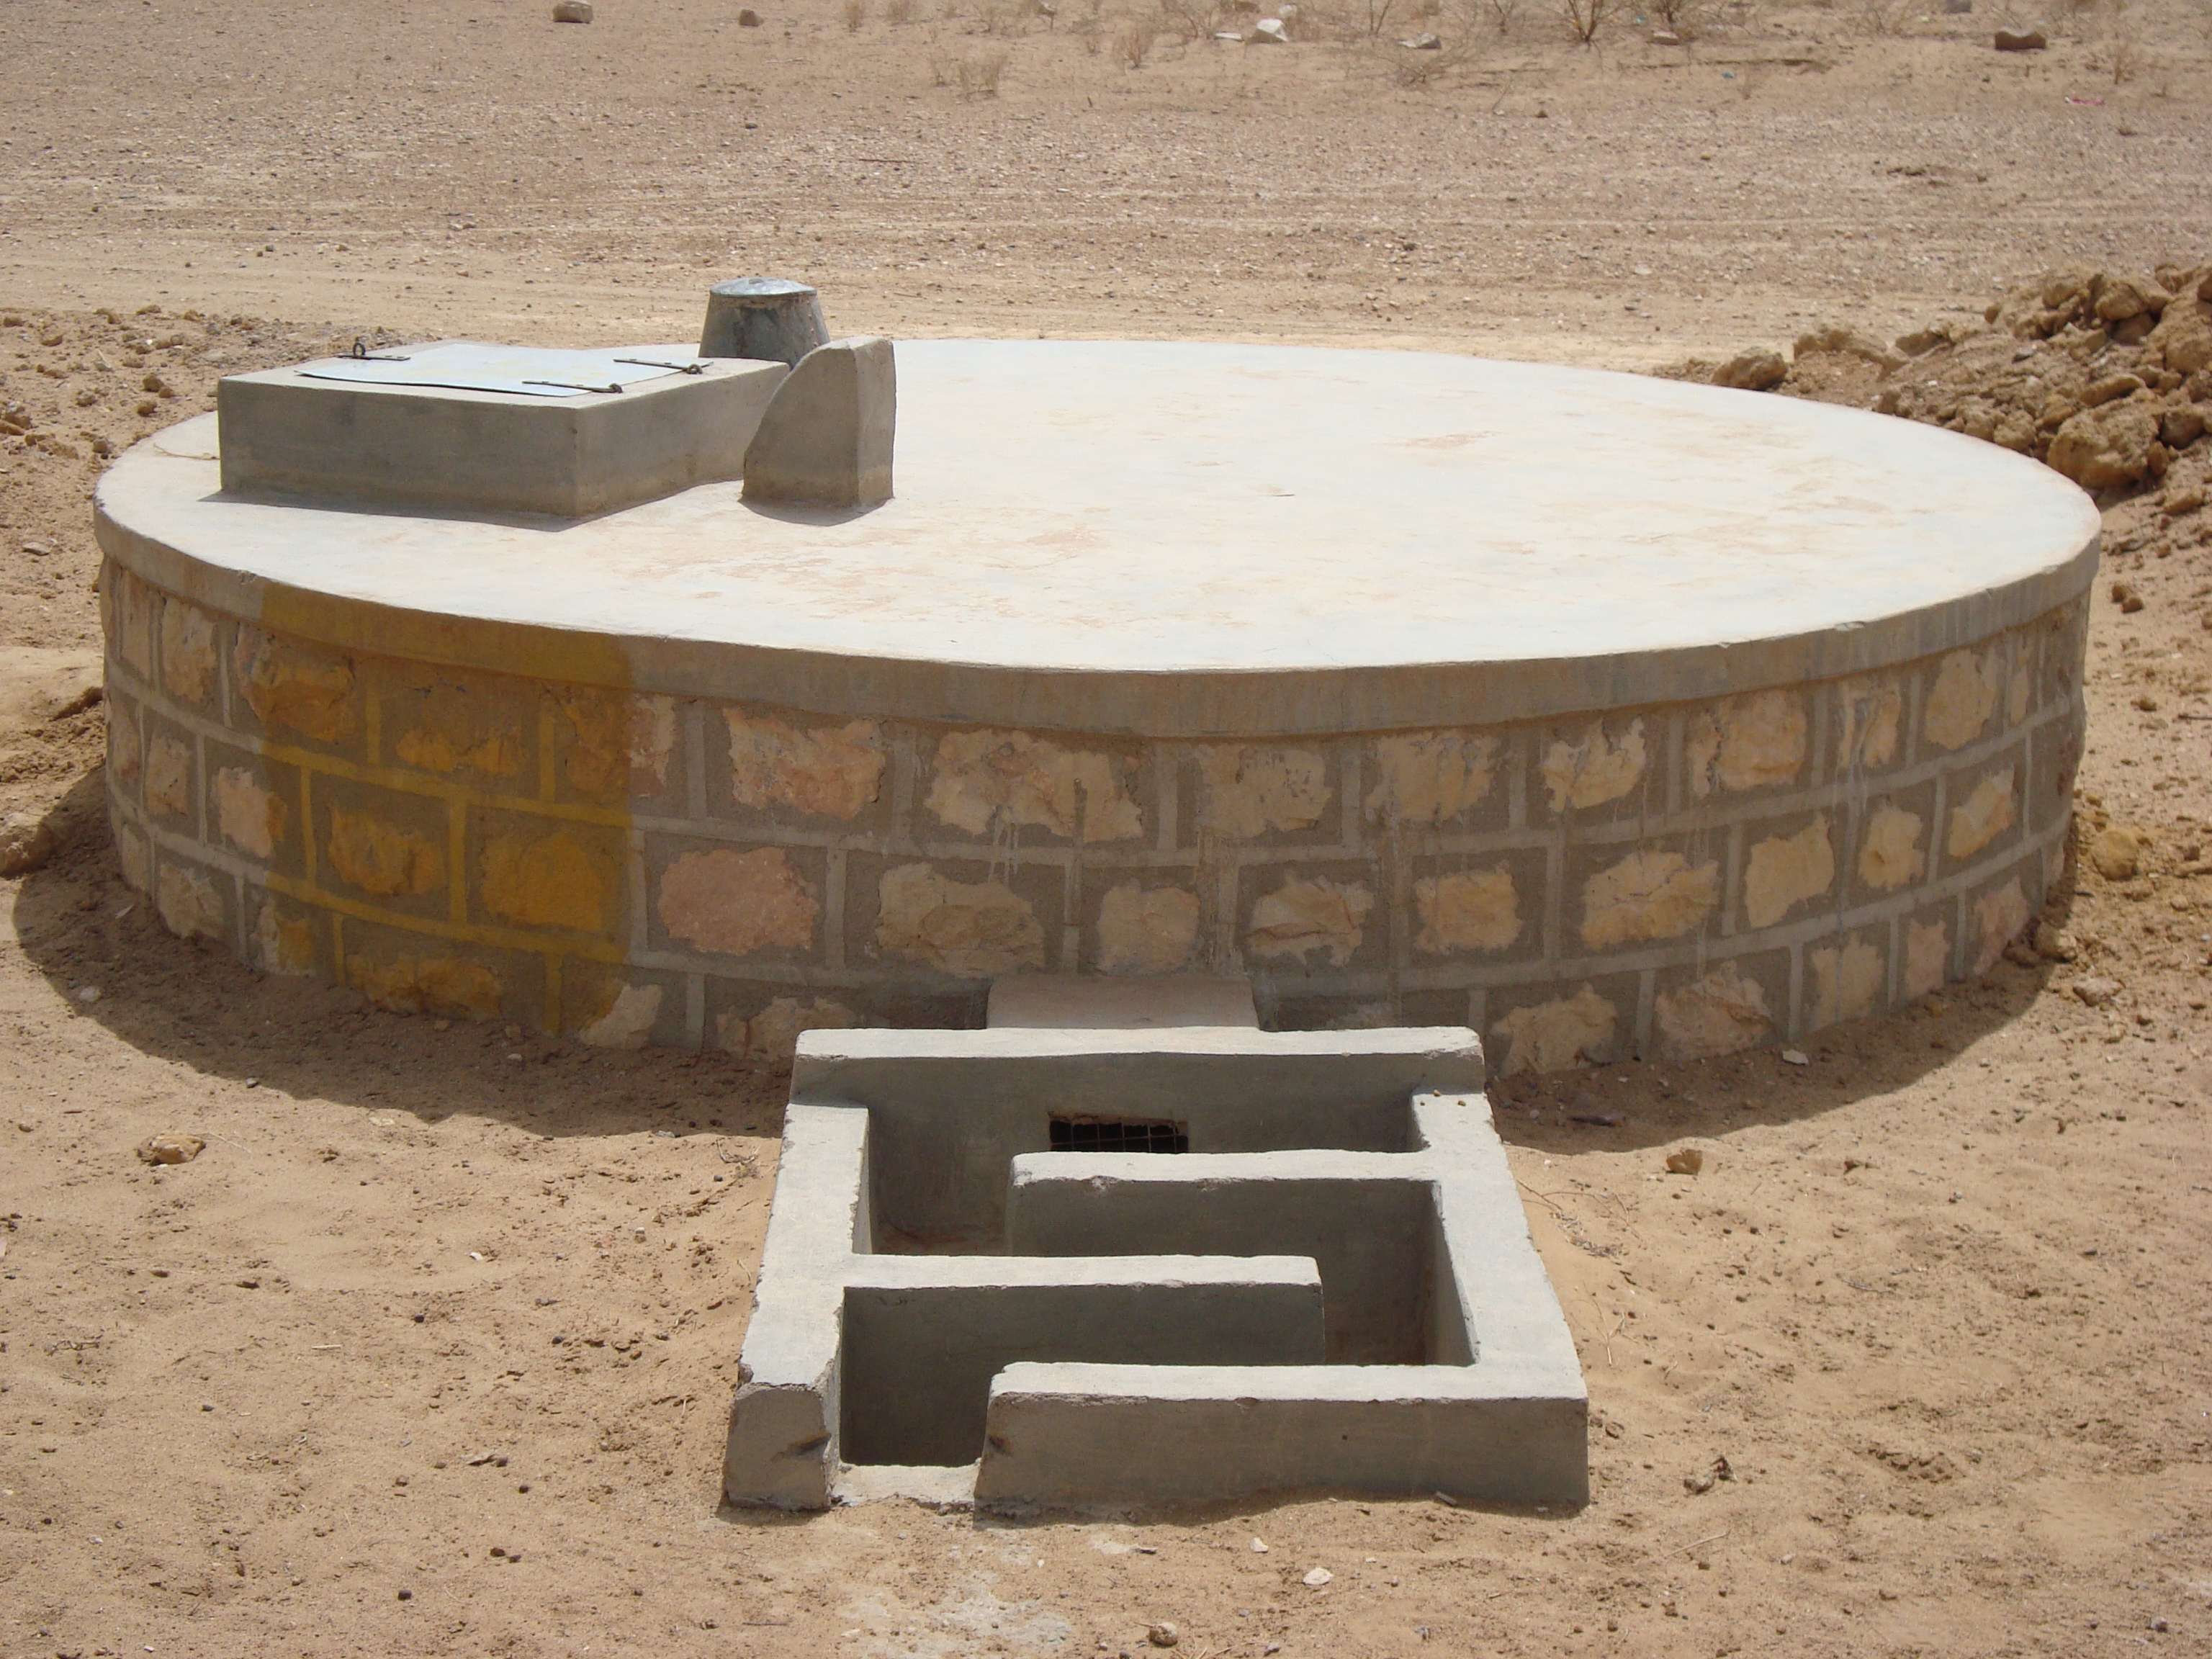 essay on water harvesting in india We will write a cheap essay sample on rain water harvesting specifically for you for only the objective of water harvesting in india differs between urban and.